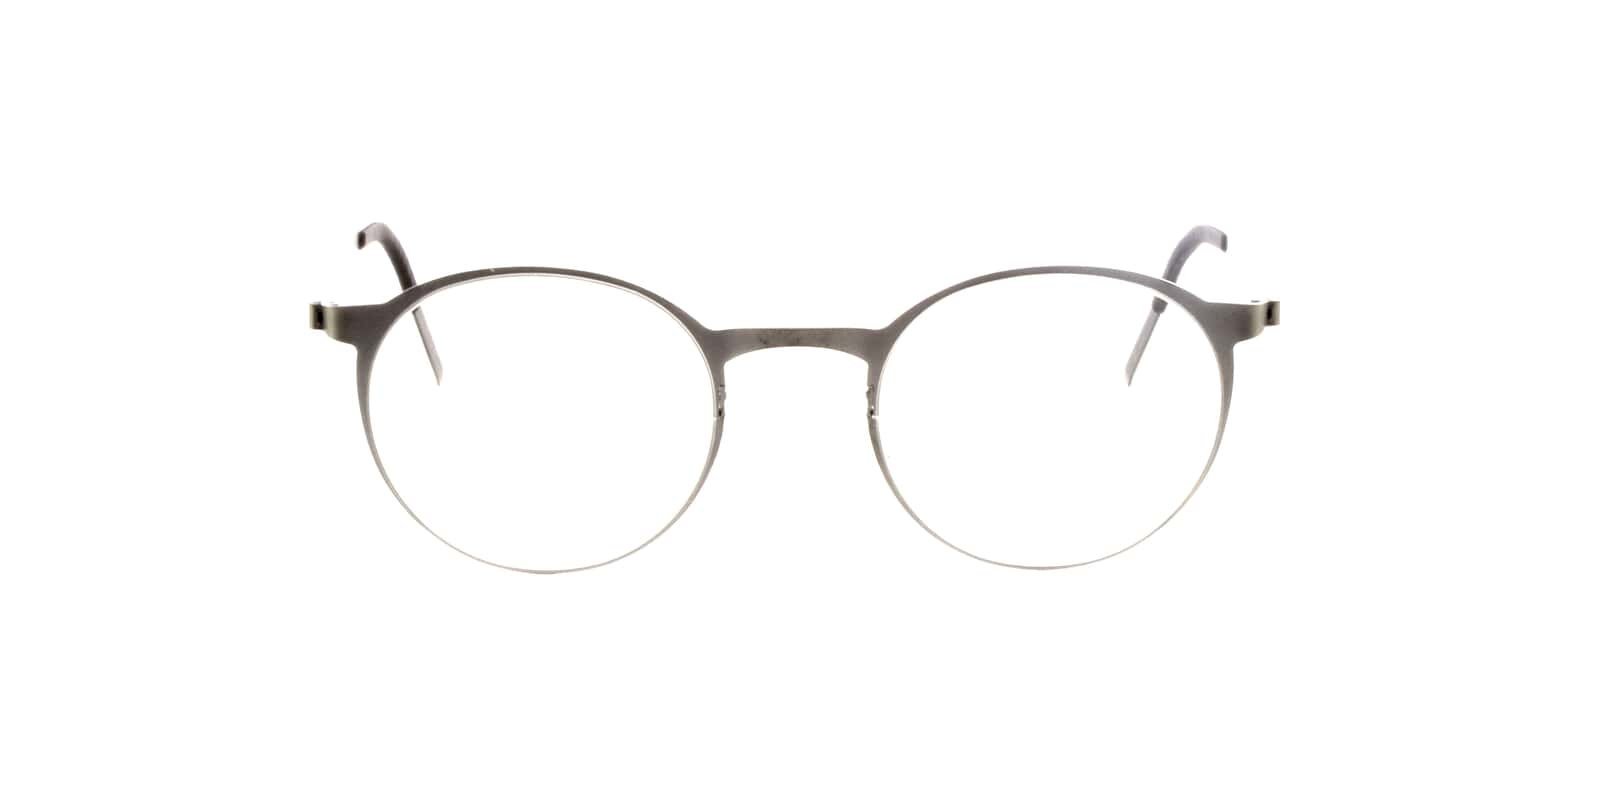 Buy LINDBERG 9571 T415 U9 (48) Glasses | LINDBERG designer glasses ...